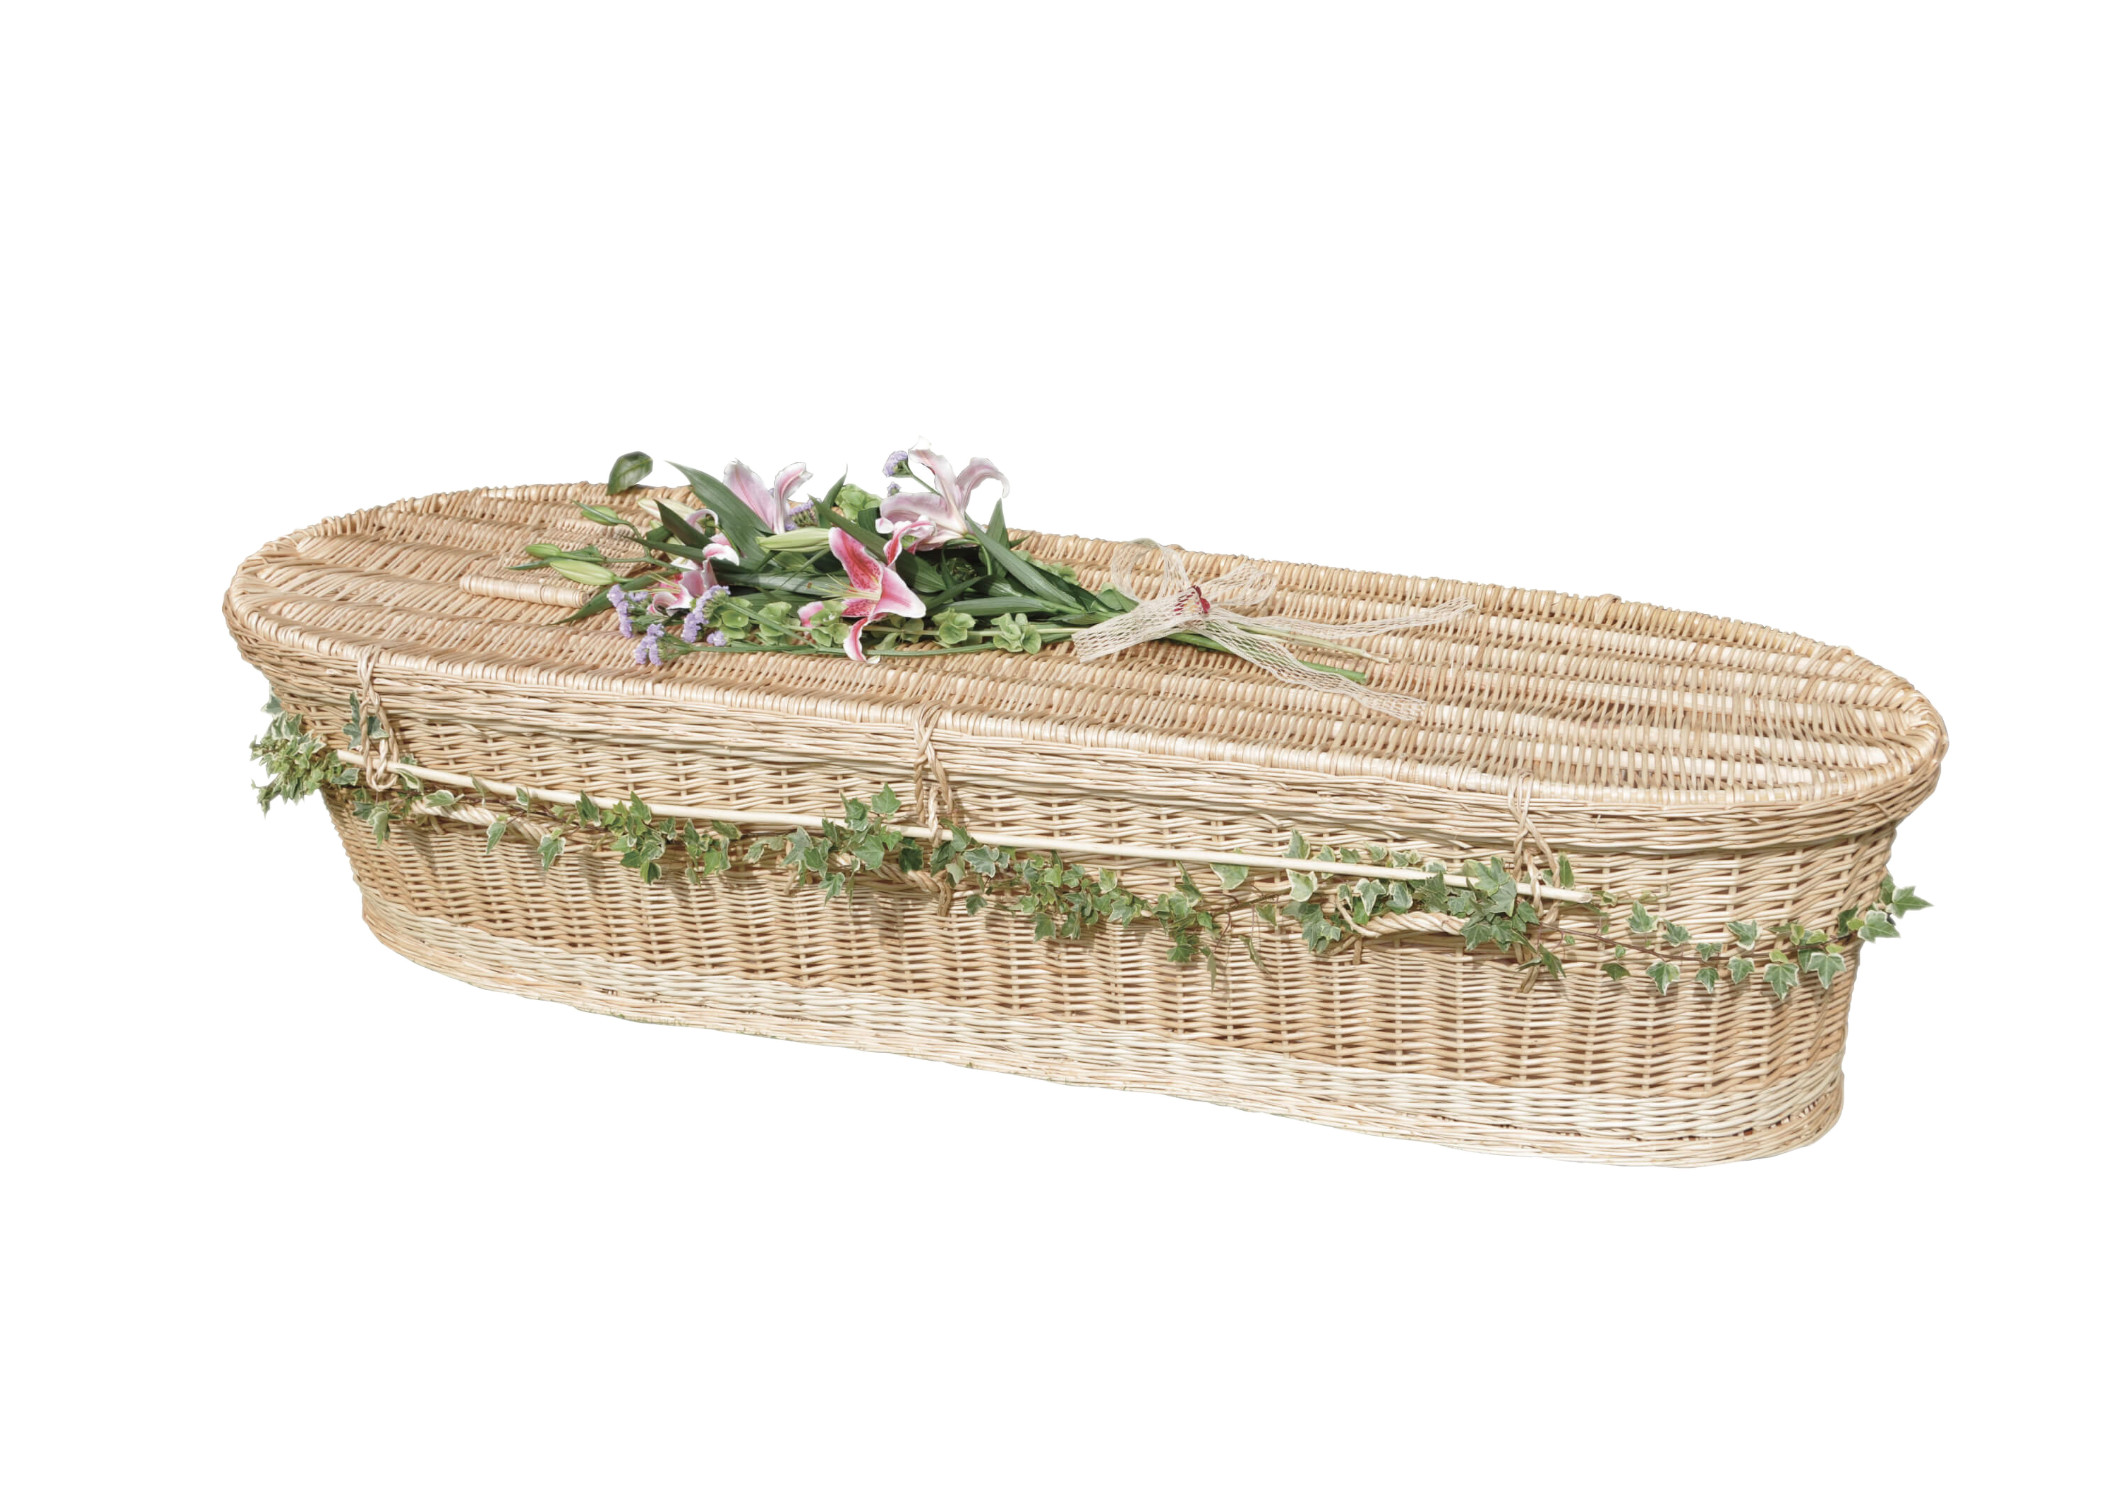 Oval shape natural willow coffin with woven handles.